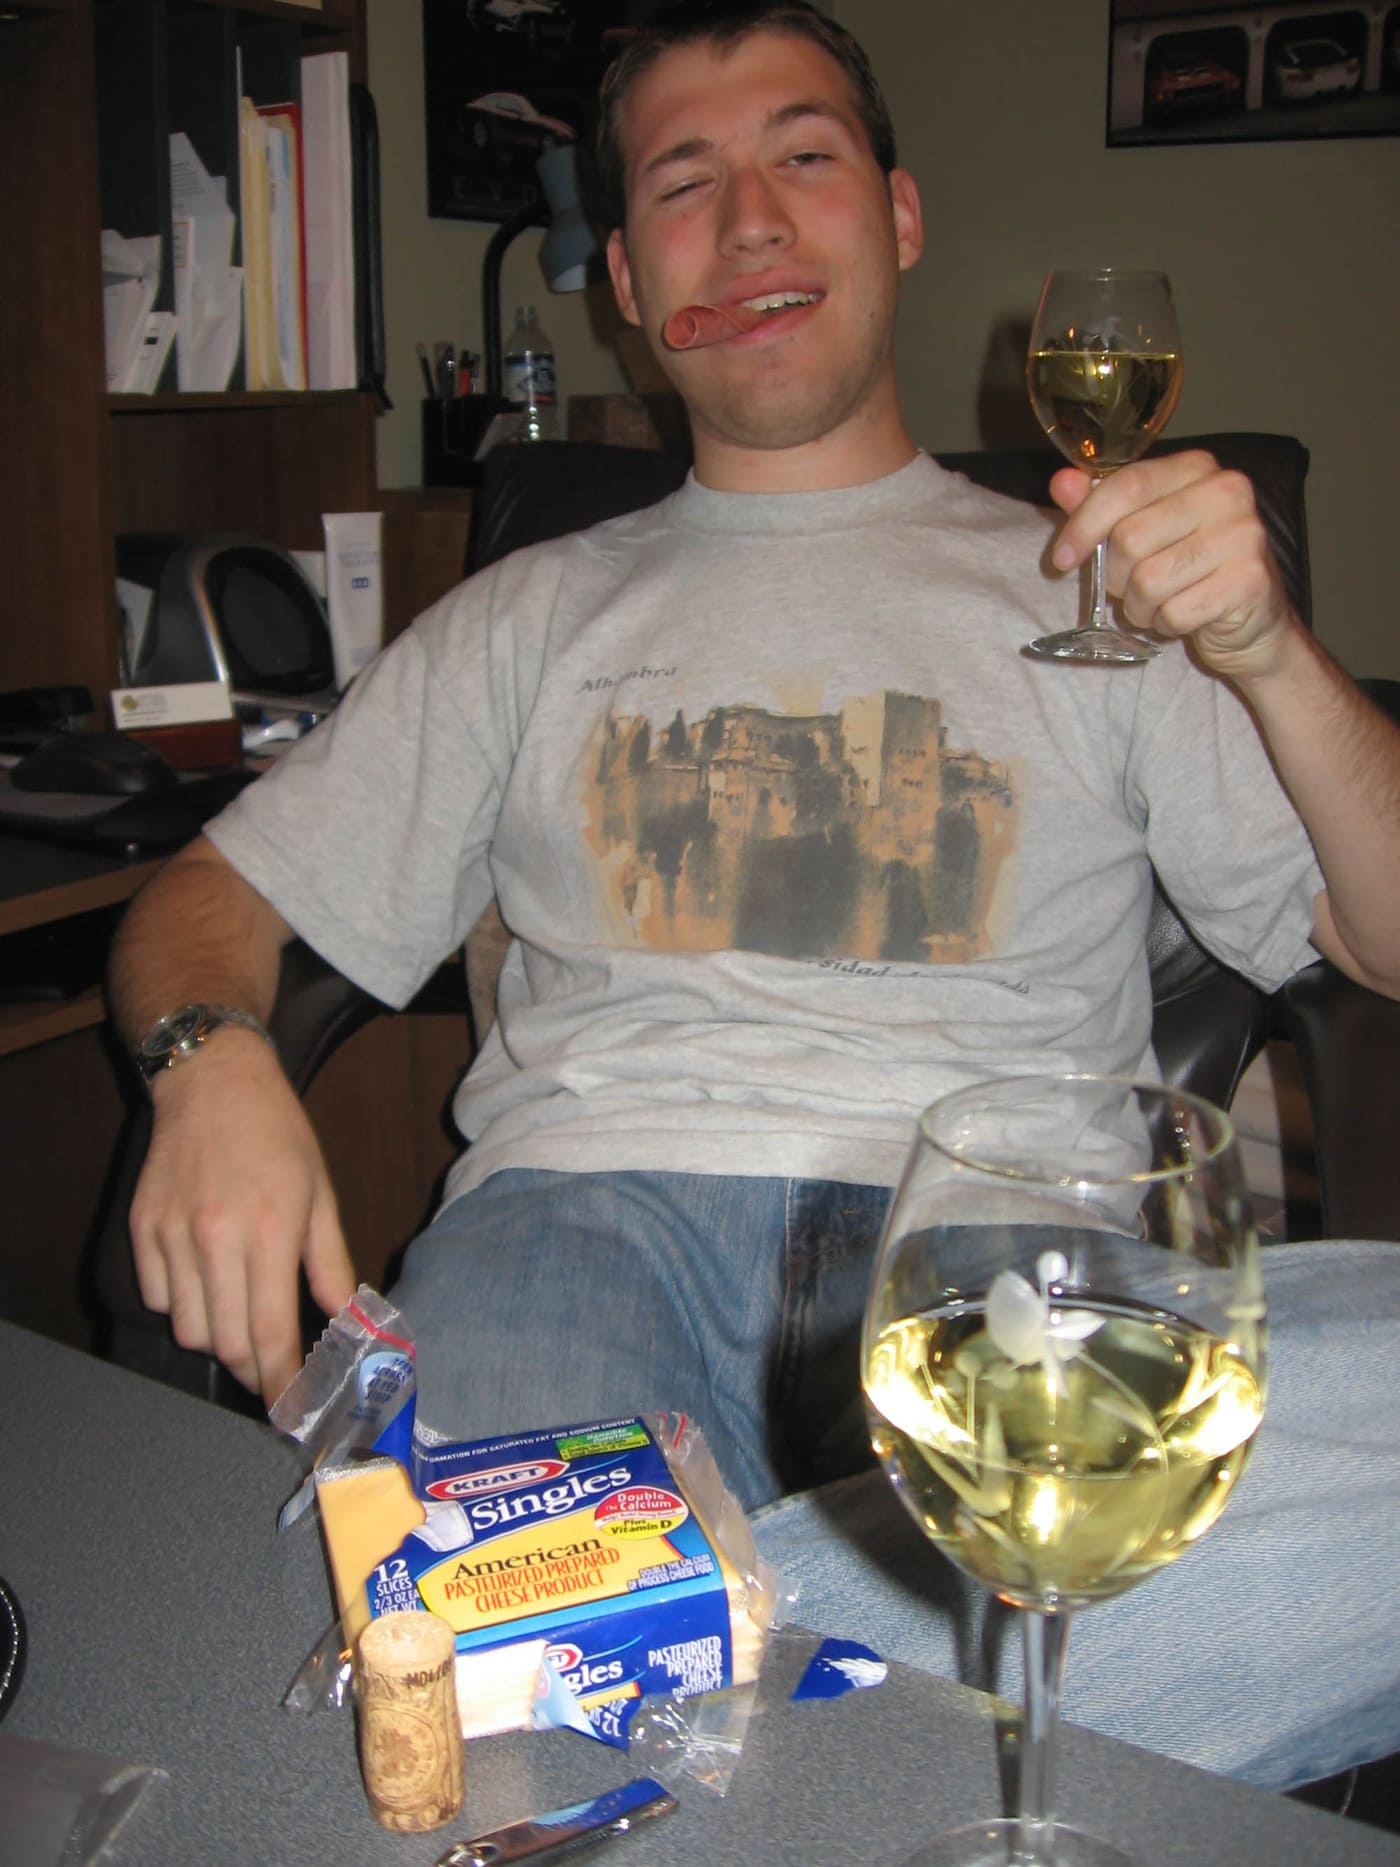 Matt with wine and lunchmeat